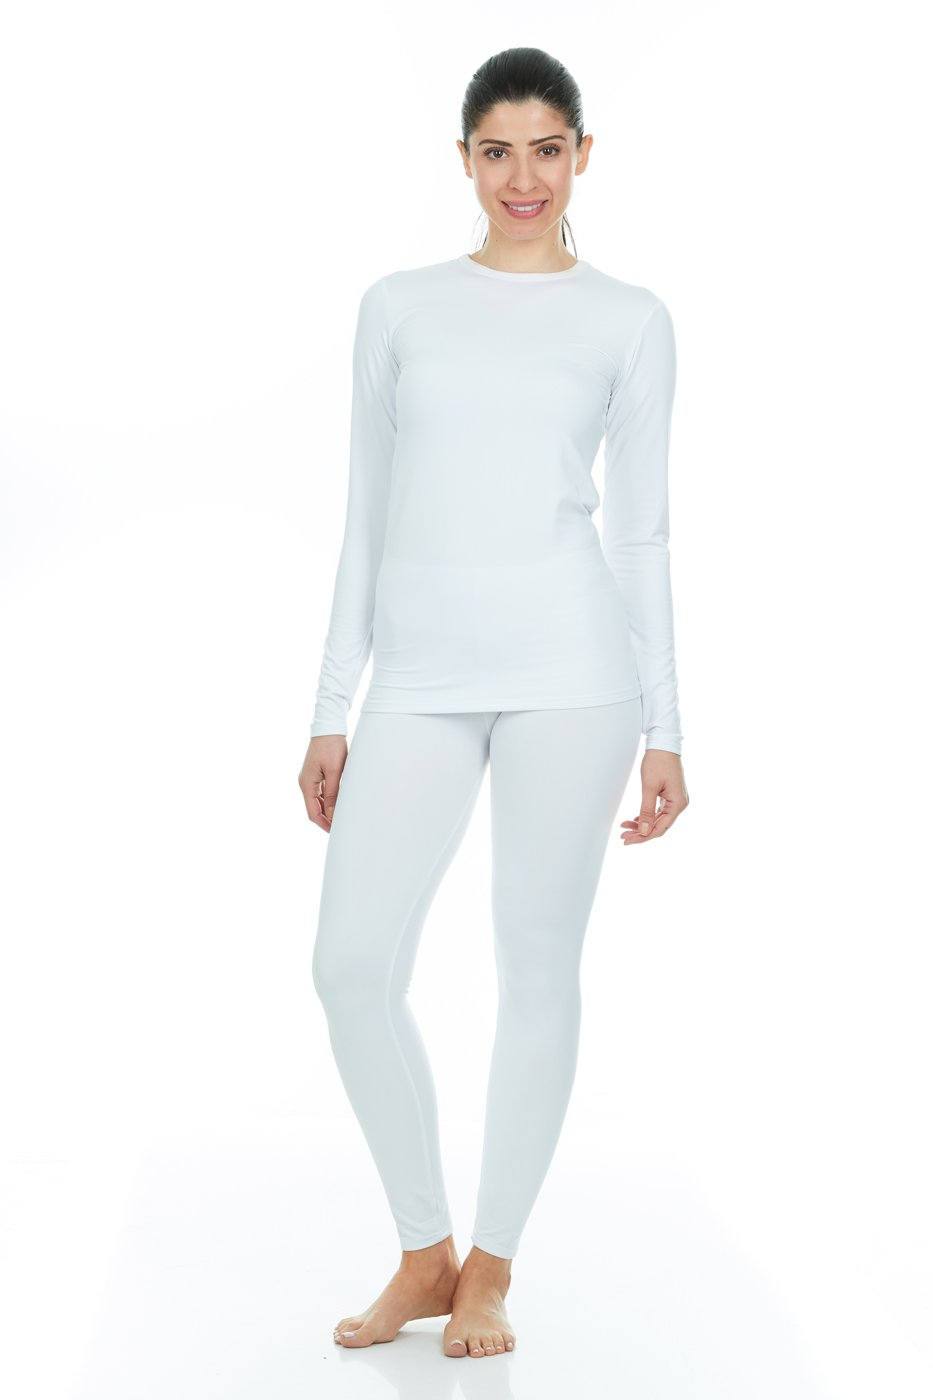 Thermajane Women's Ultra Soft Thermal Underwear Long Johns Set with Fleece Lined (XX-Small, White)